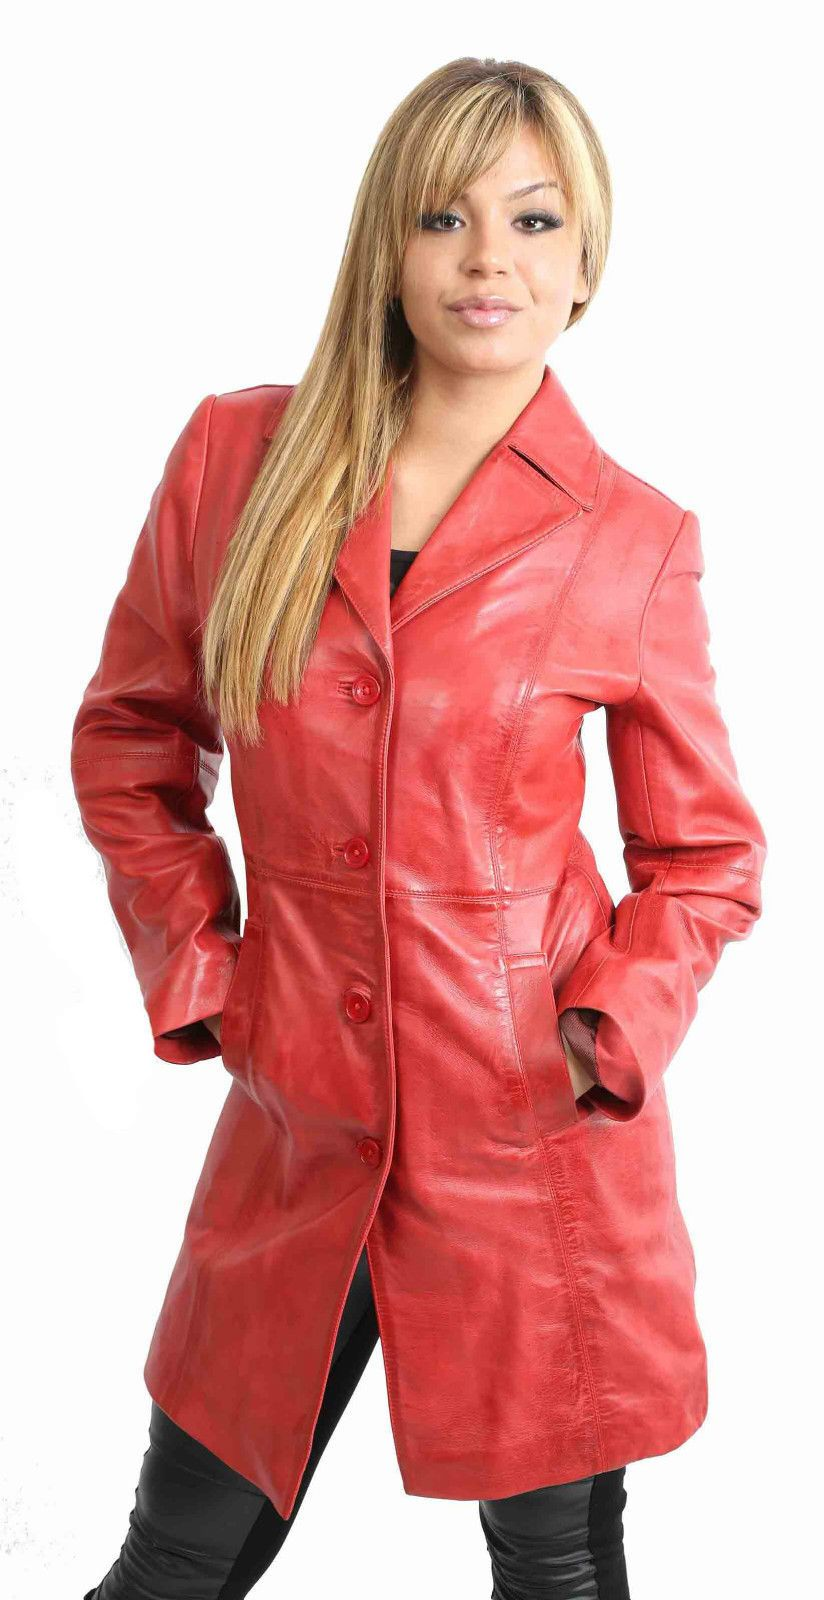 Womens Real leather Coat Ladies Fitted 3/4 Length Jacket